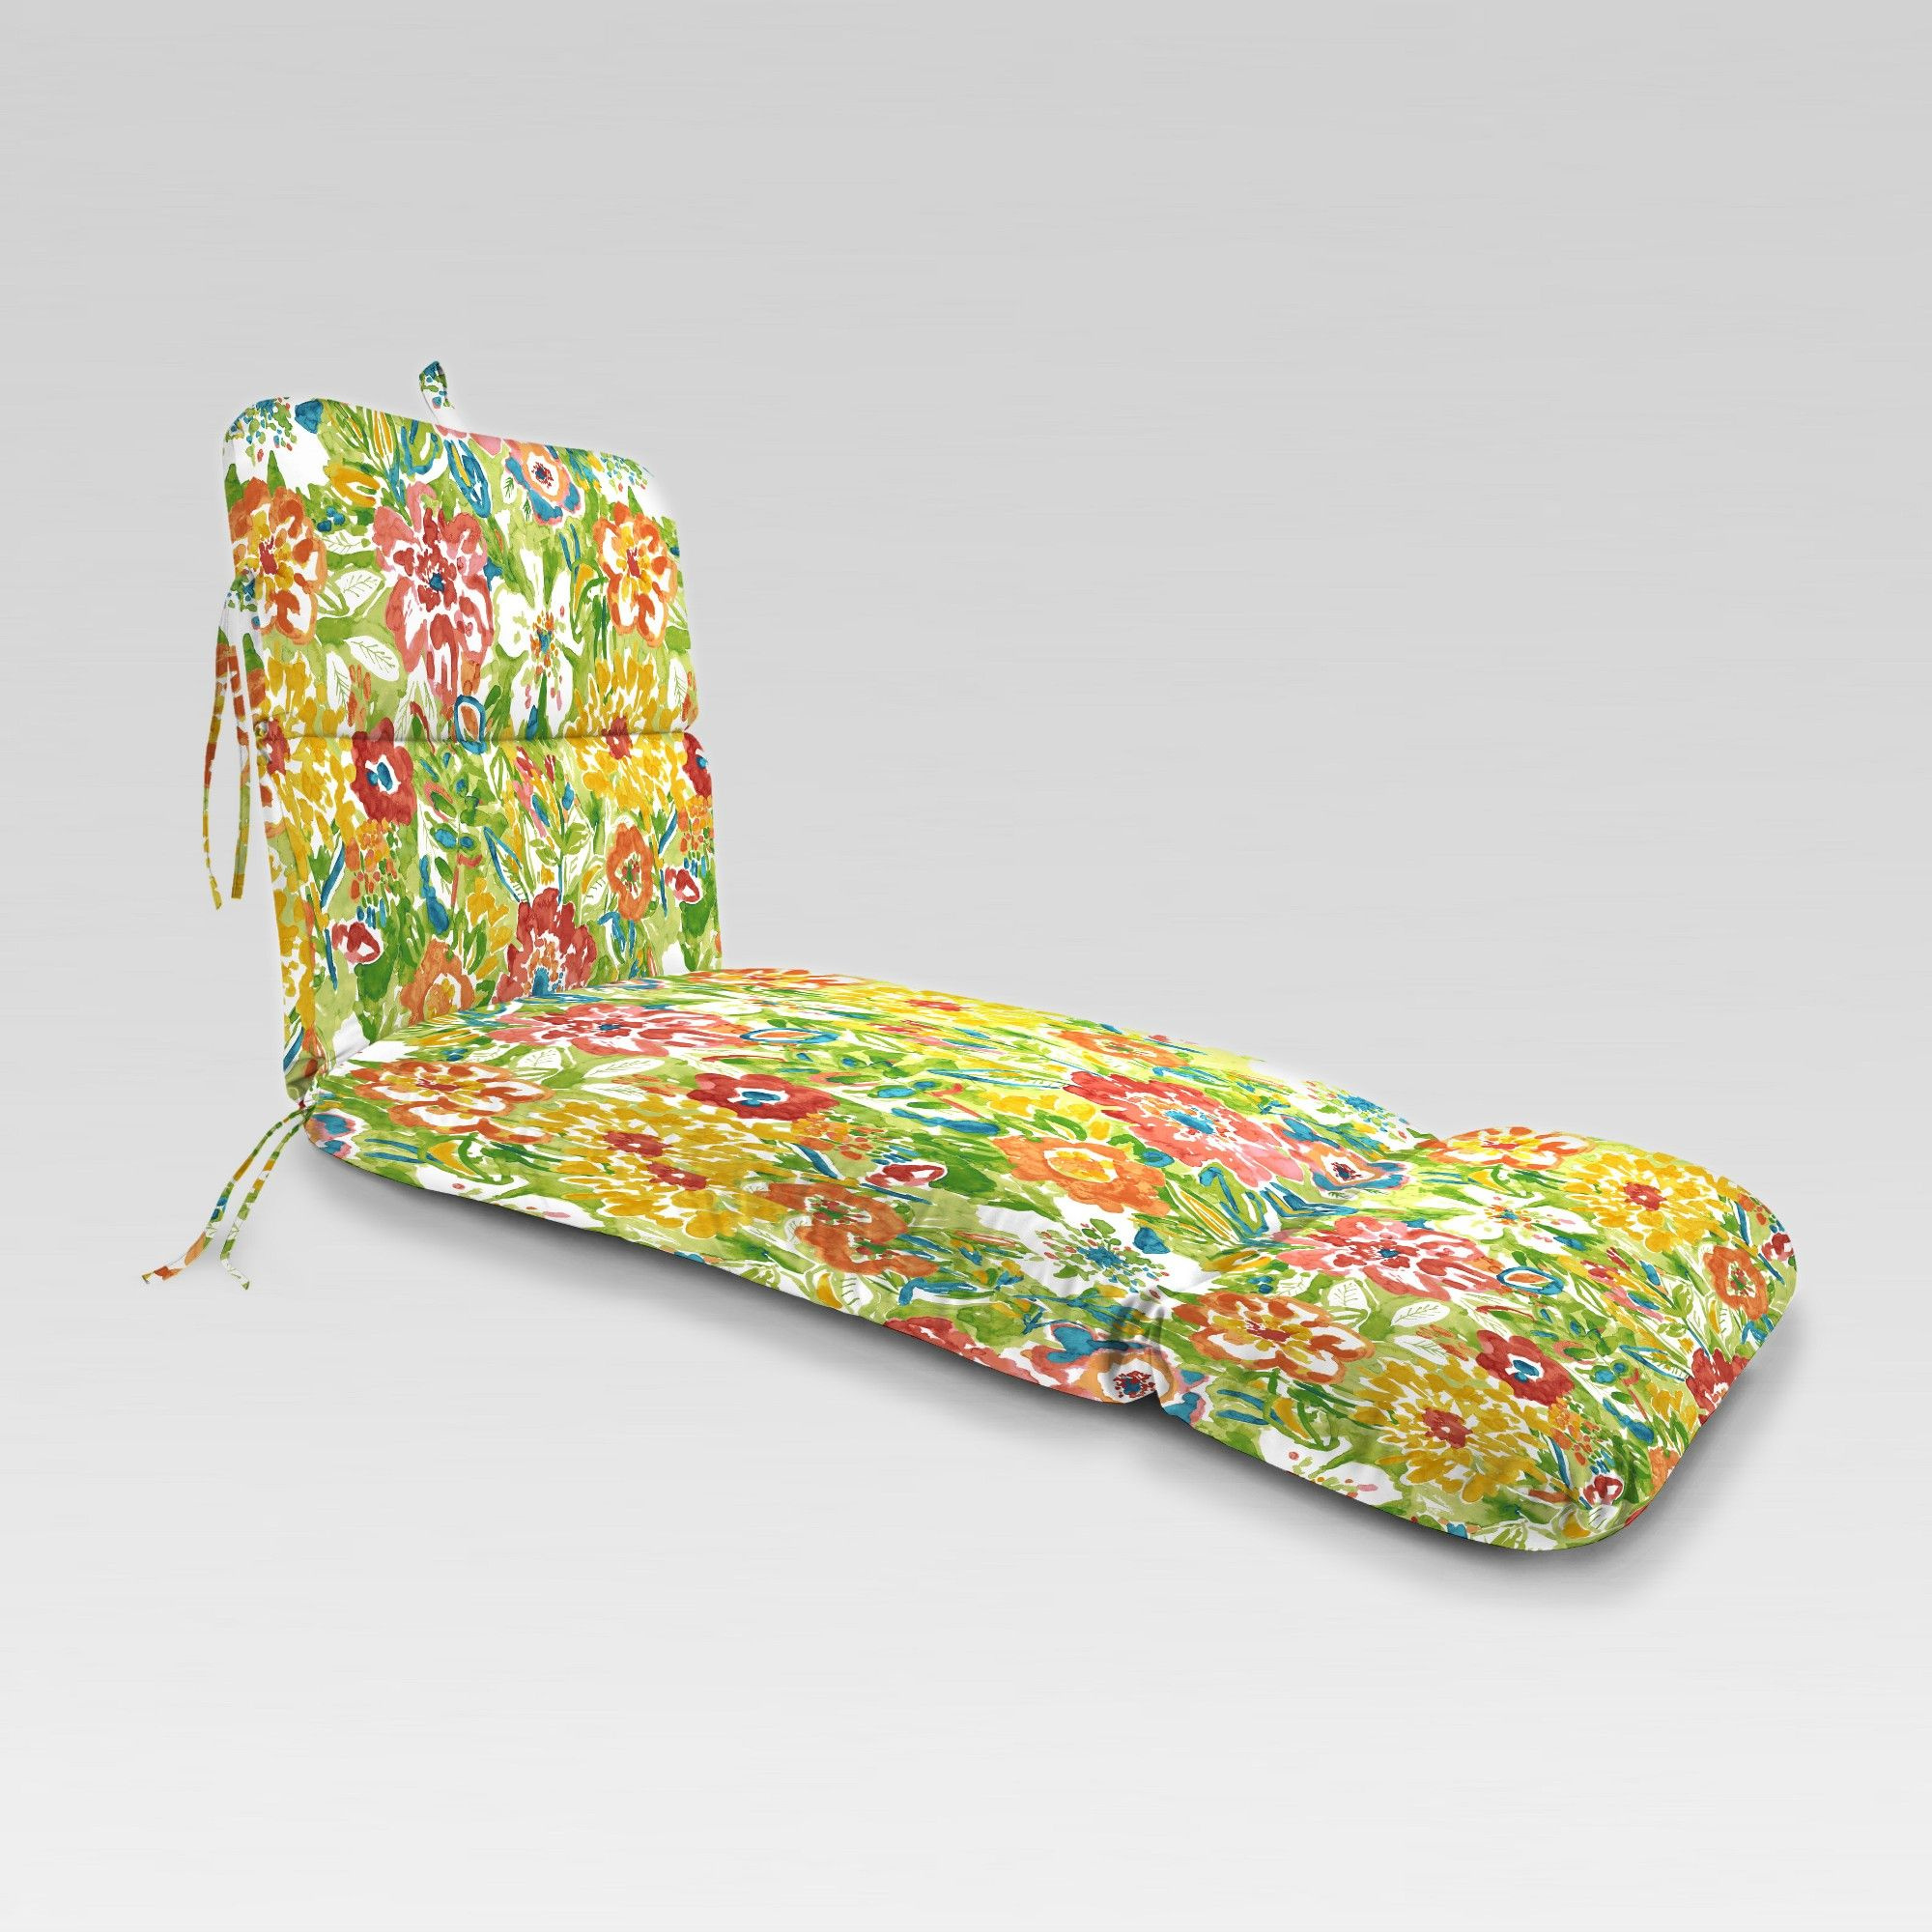 Outdoor Knife Edge Chaise Lounge